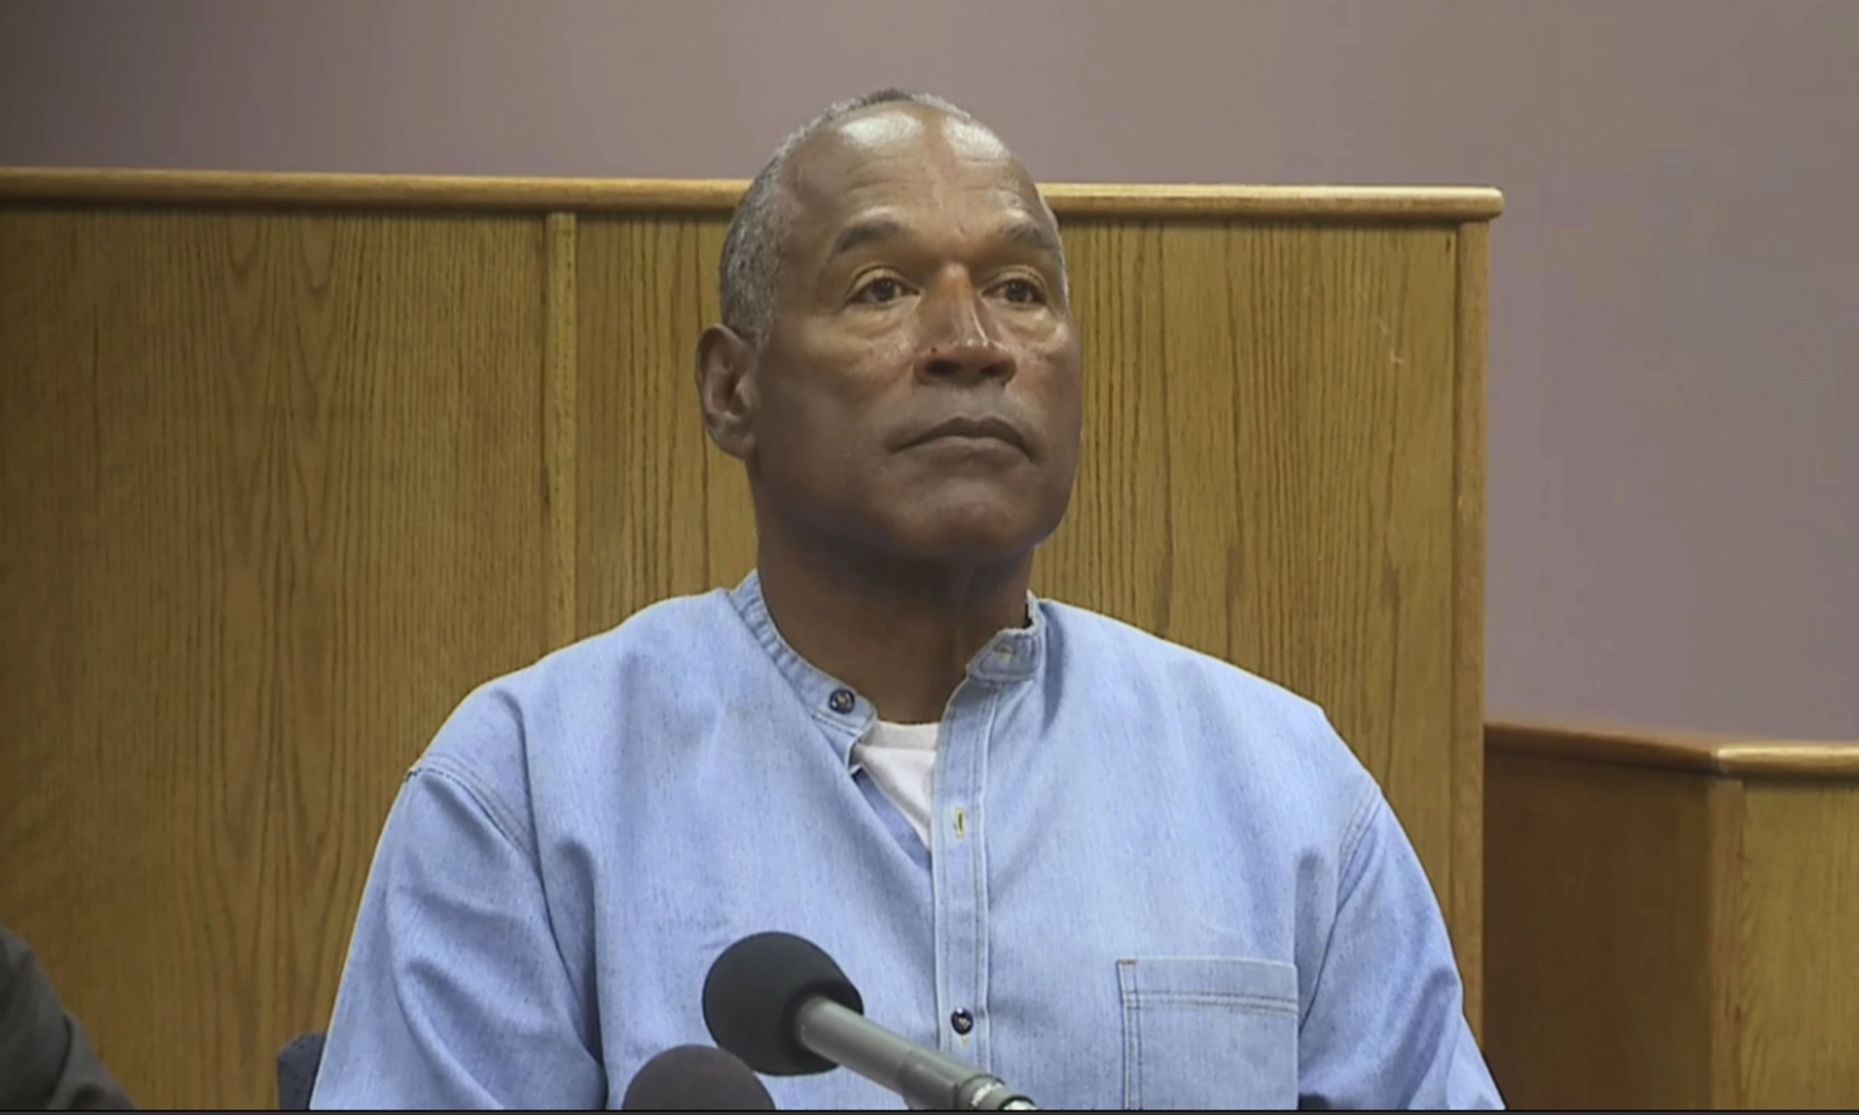 Parole board votes to release OJ Simpson from prison